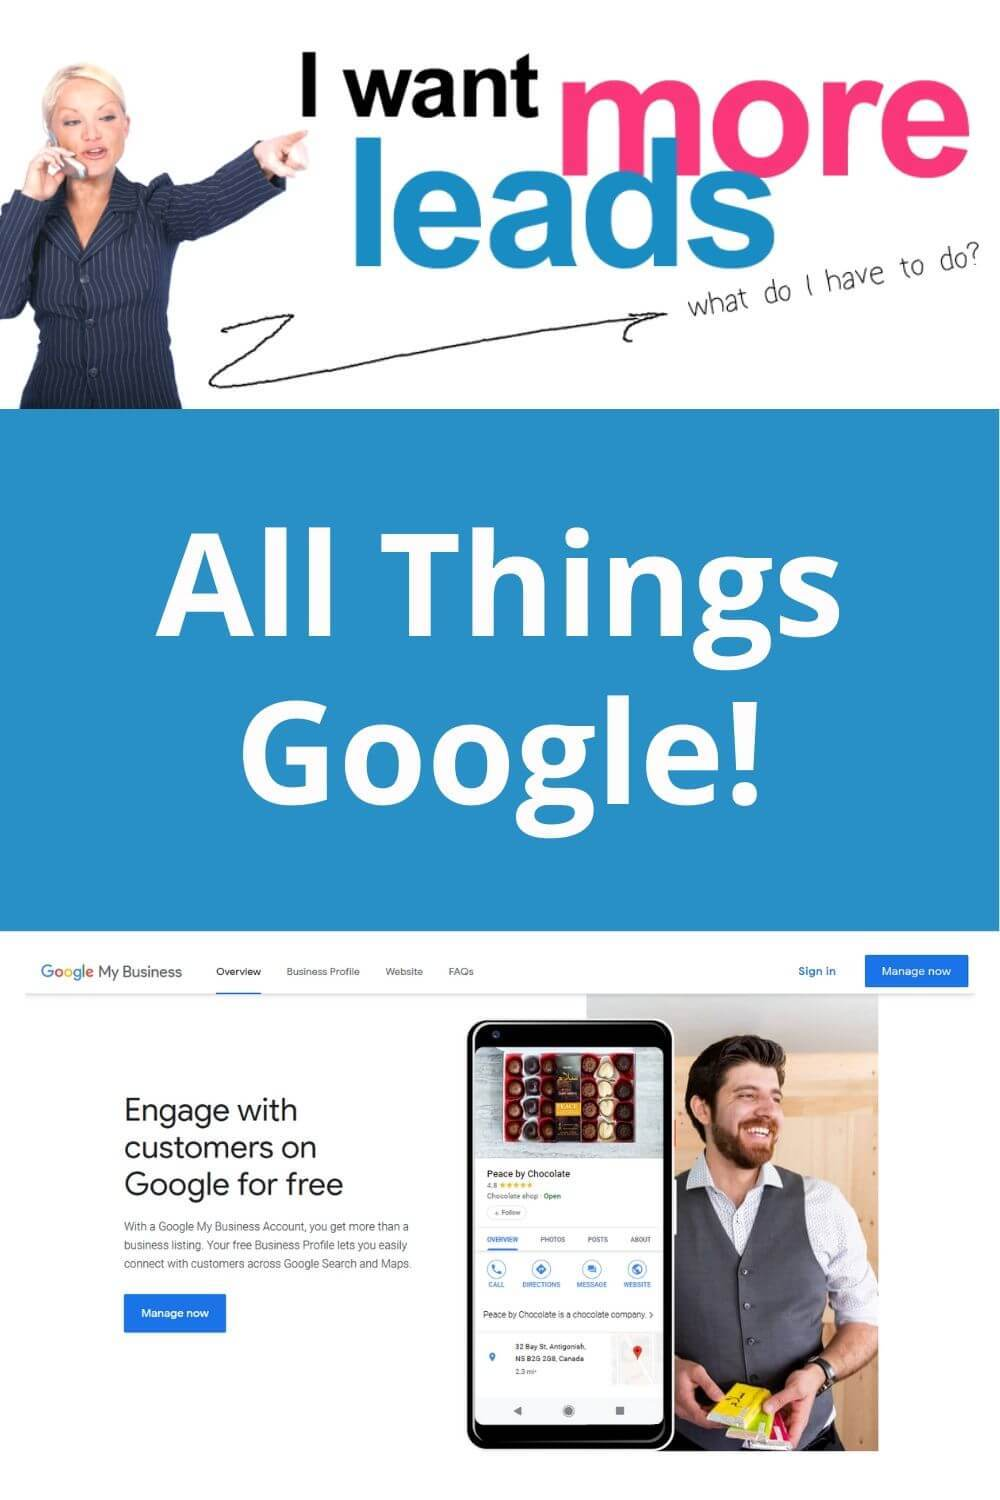 All Things Google! Best FREE Lead Genereator